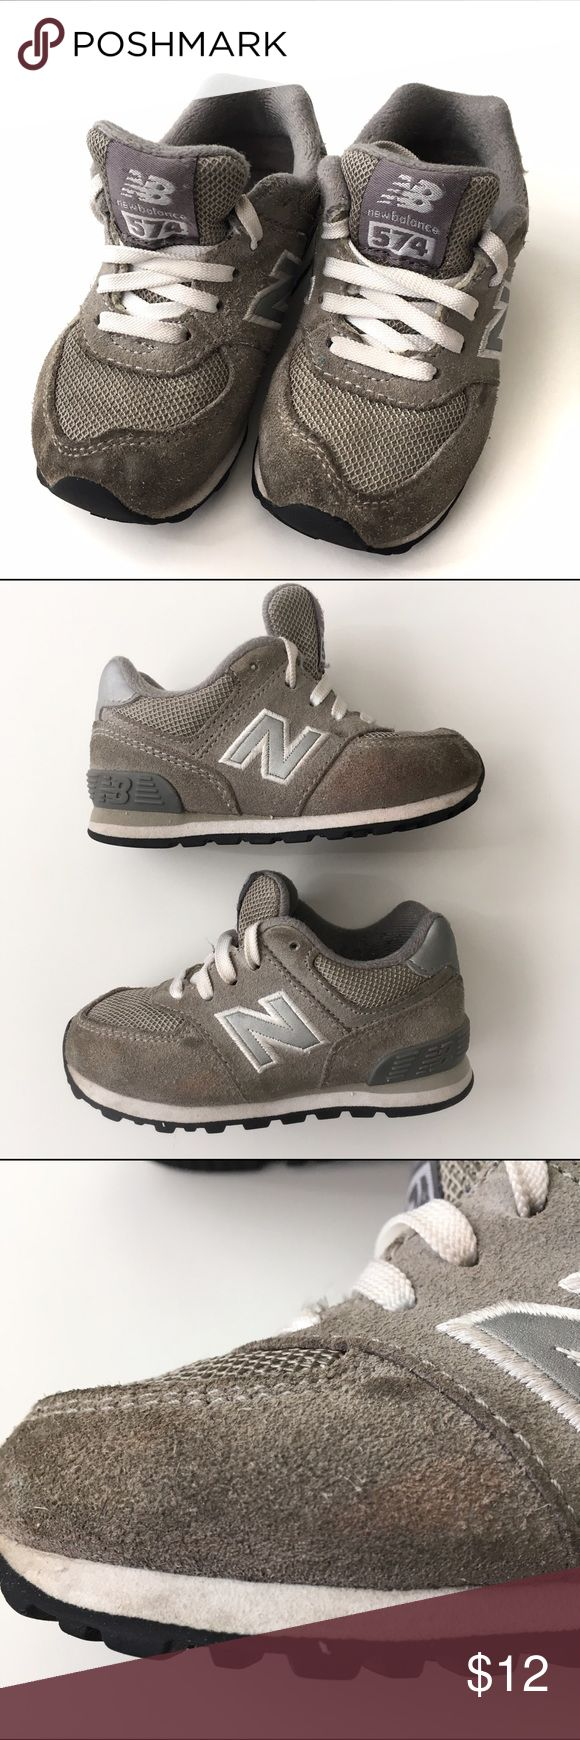 New Balance Toddler Sneakers New Balance Toddler Sneaker in size 6.5 Grey on grey color. In Play Condition; has some darkening at the toes, pink discoloration on sides and a stain on the back rubber, Laces are discolored, bottoms are mostly clear. See pictures for all flaws. Even with flaws, great quality brand and can still get so much use out of them. $12 or discounted of bundled. New Balance Shoes